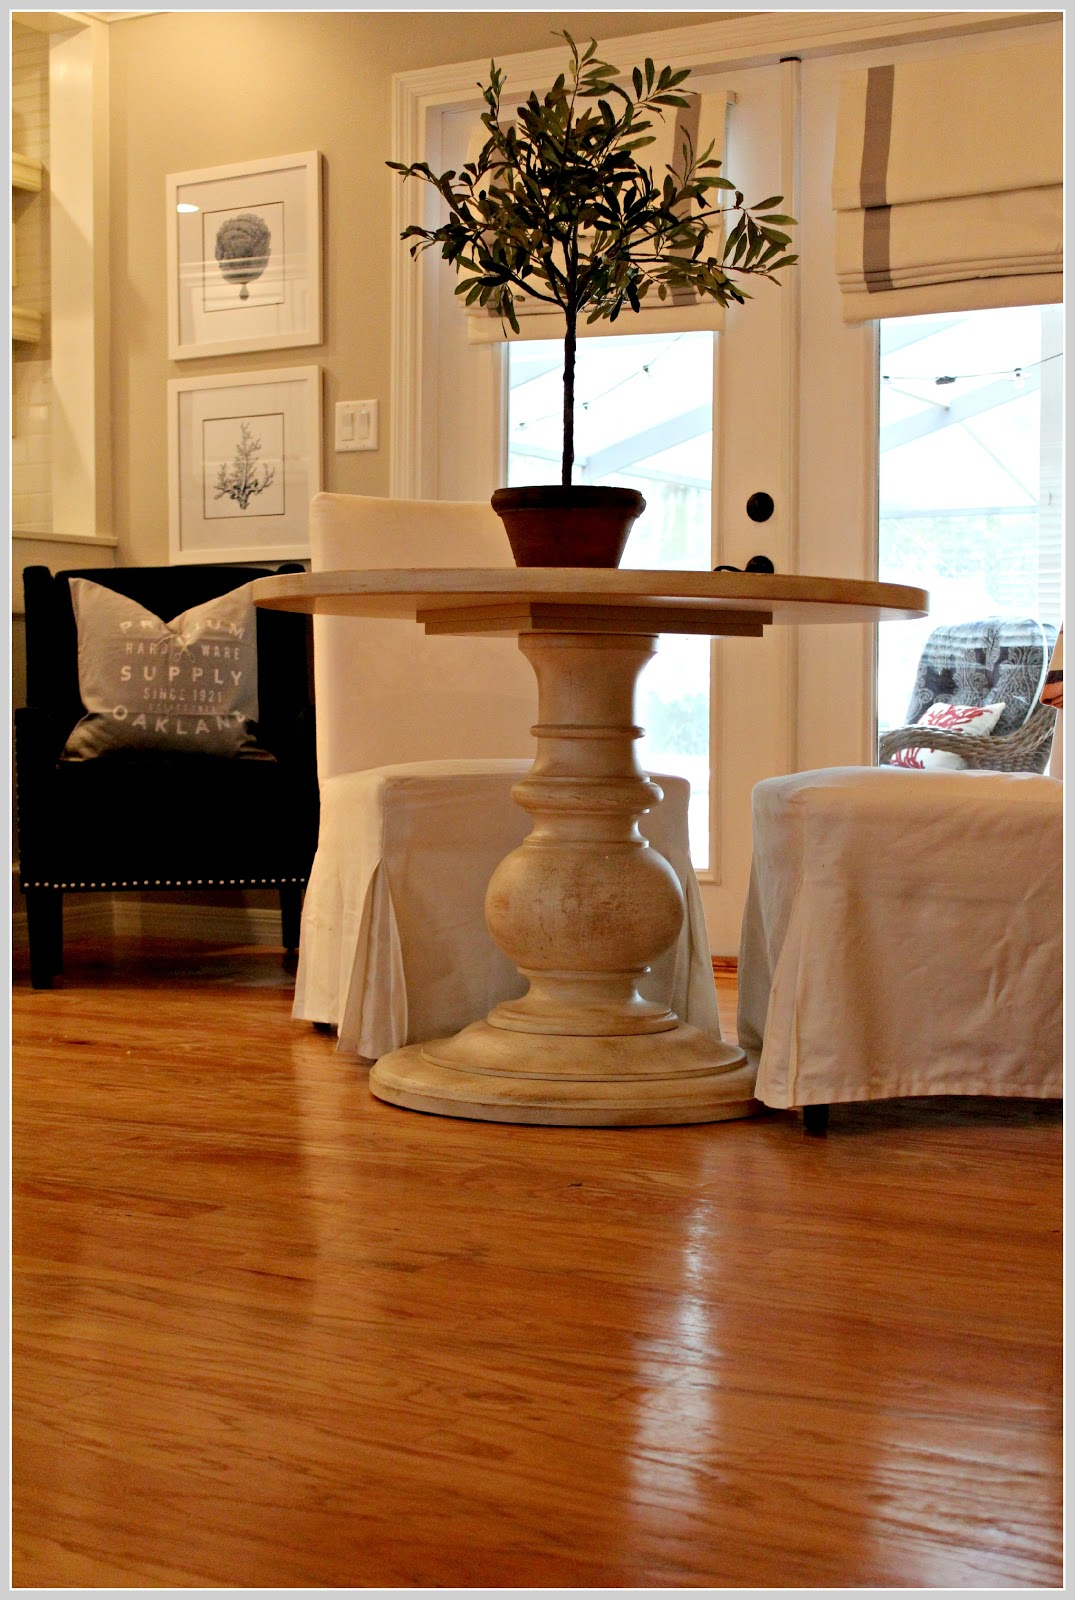 Pottery barn dining table white - I Love The Weathered White Finish And The Large Pedestal Base I Might Not Keep These Chairs With It Though That S Up For Debate